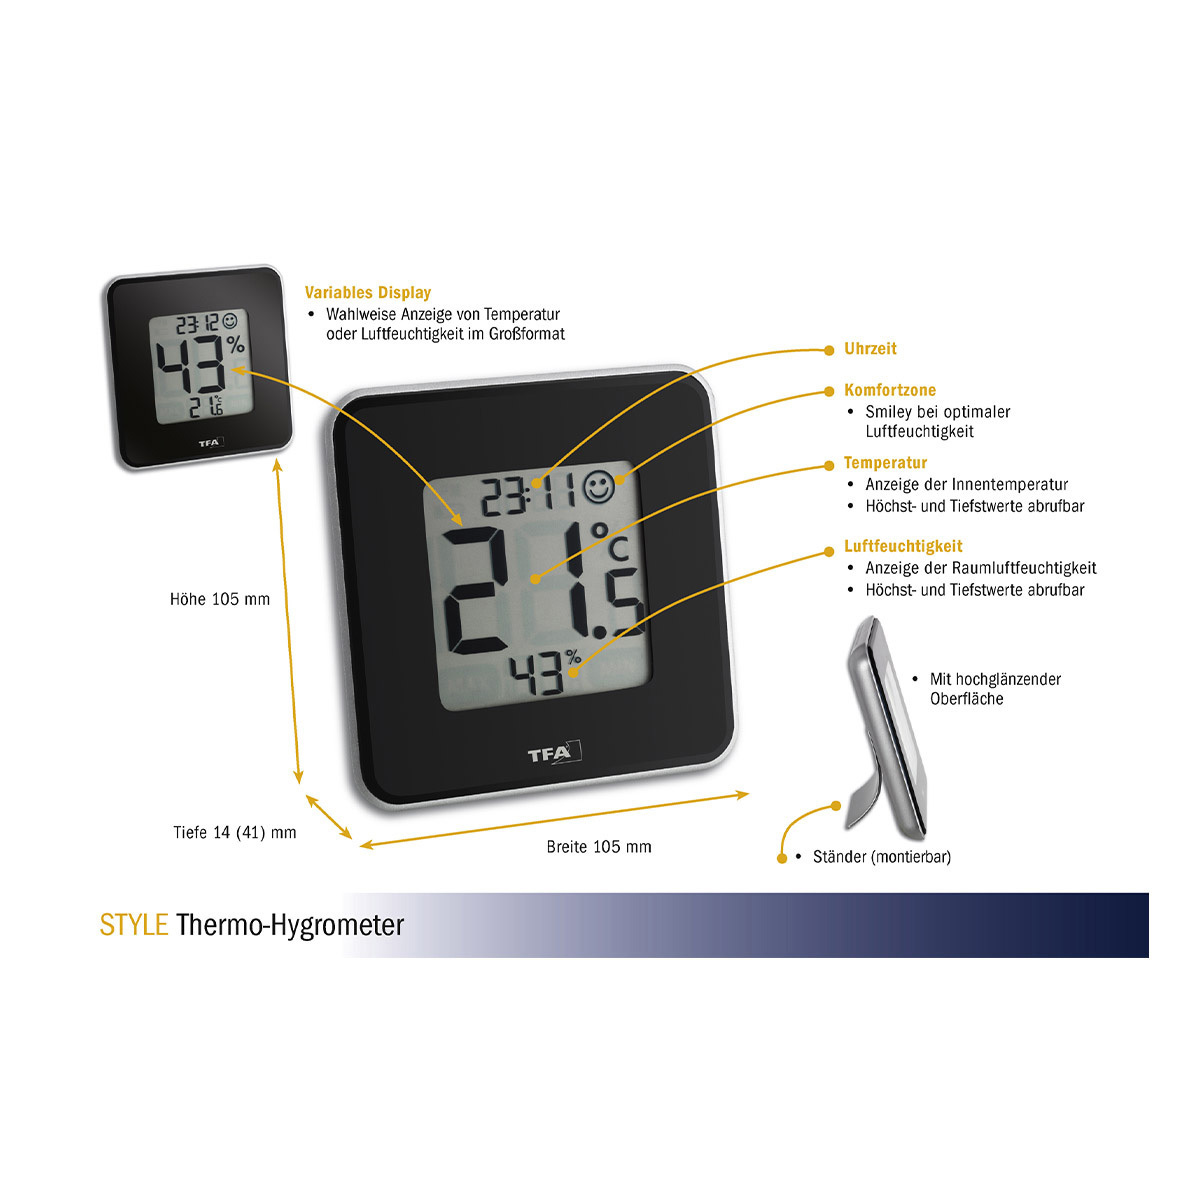 30-5021-01-digitales-thermo-hygrometer-style-abmessungen-1200x1200px.jpg